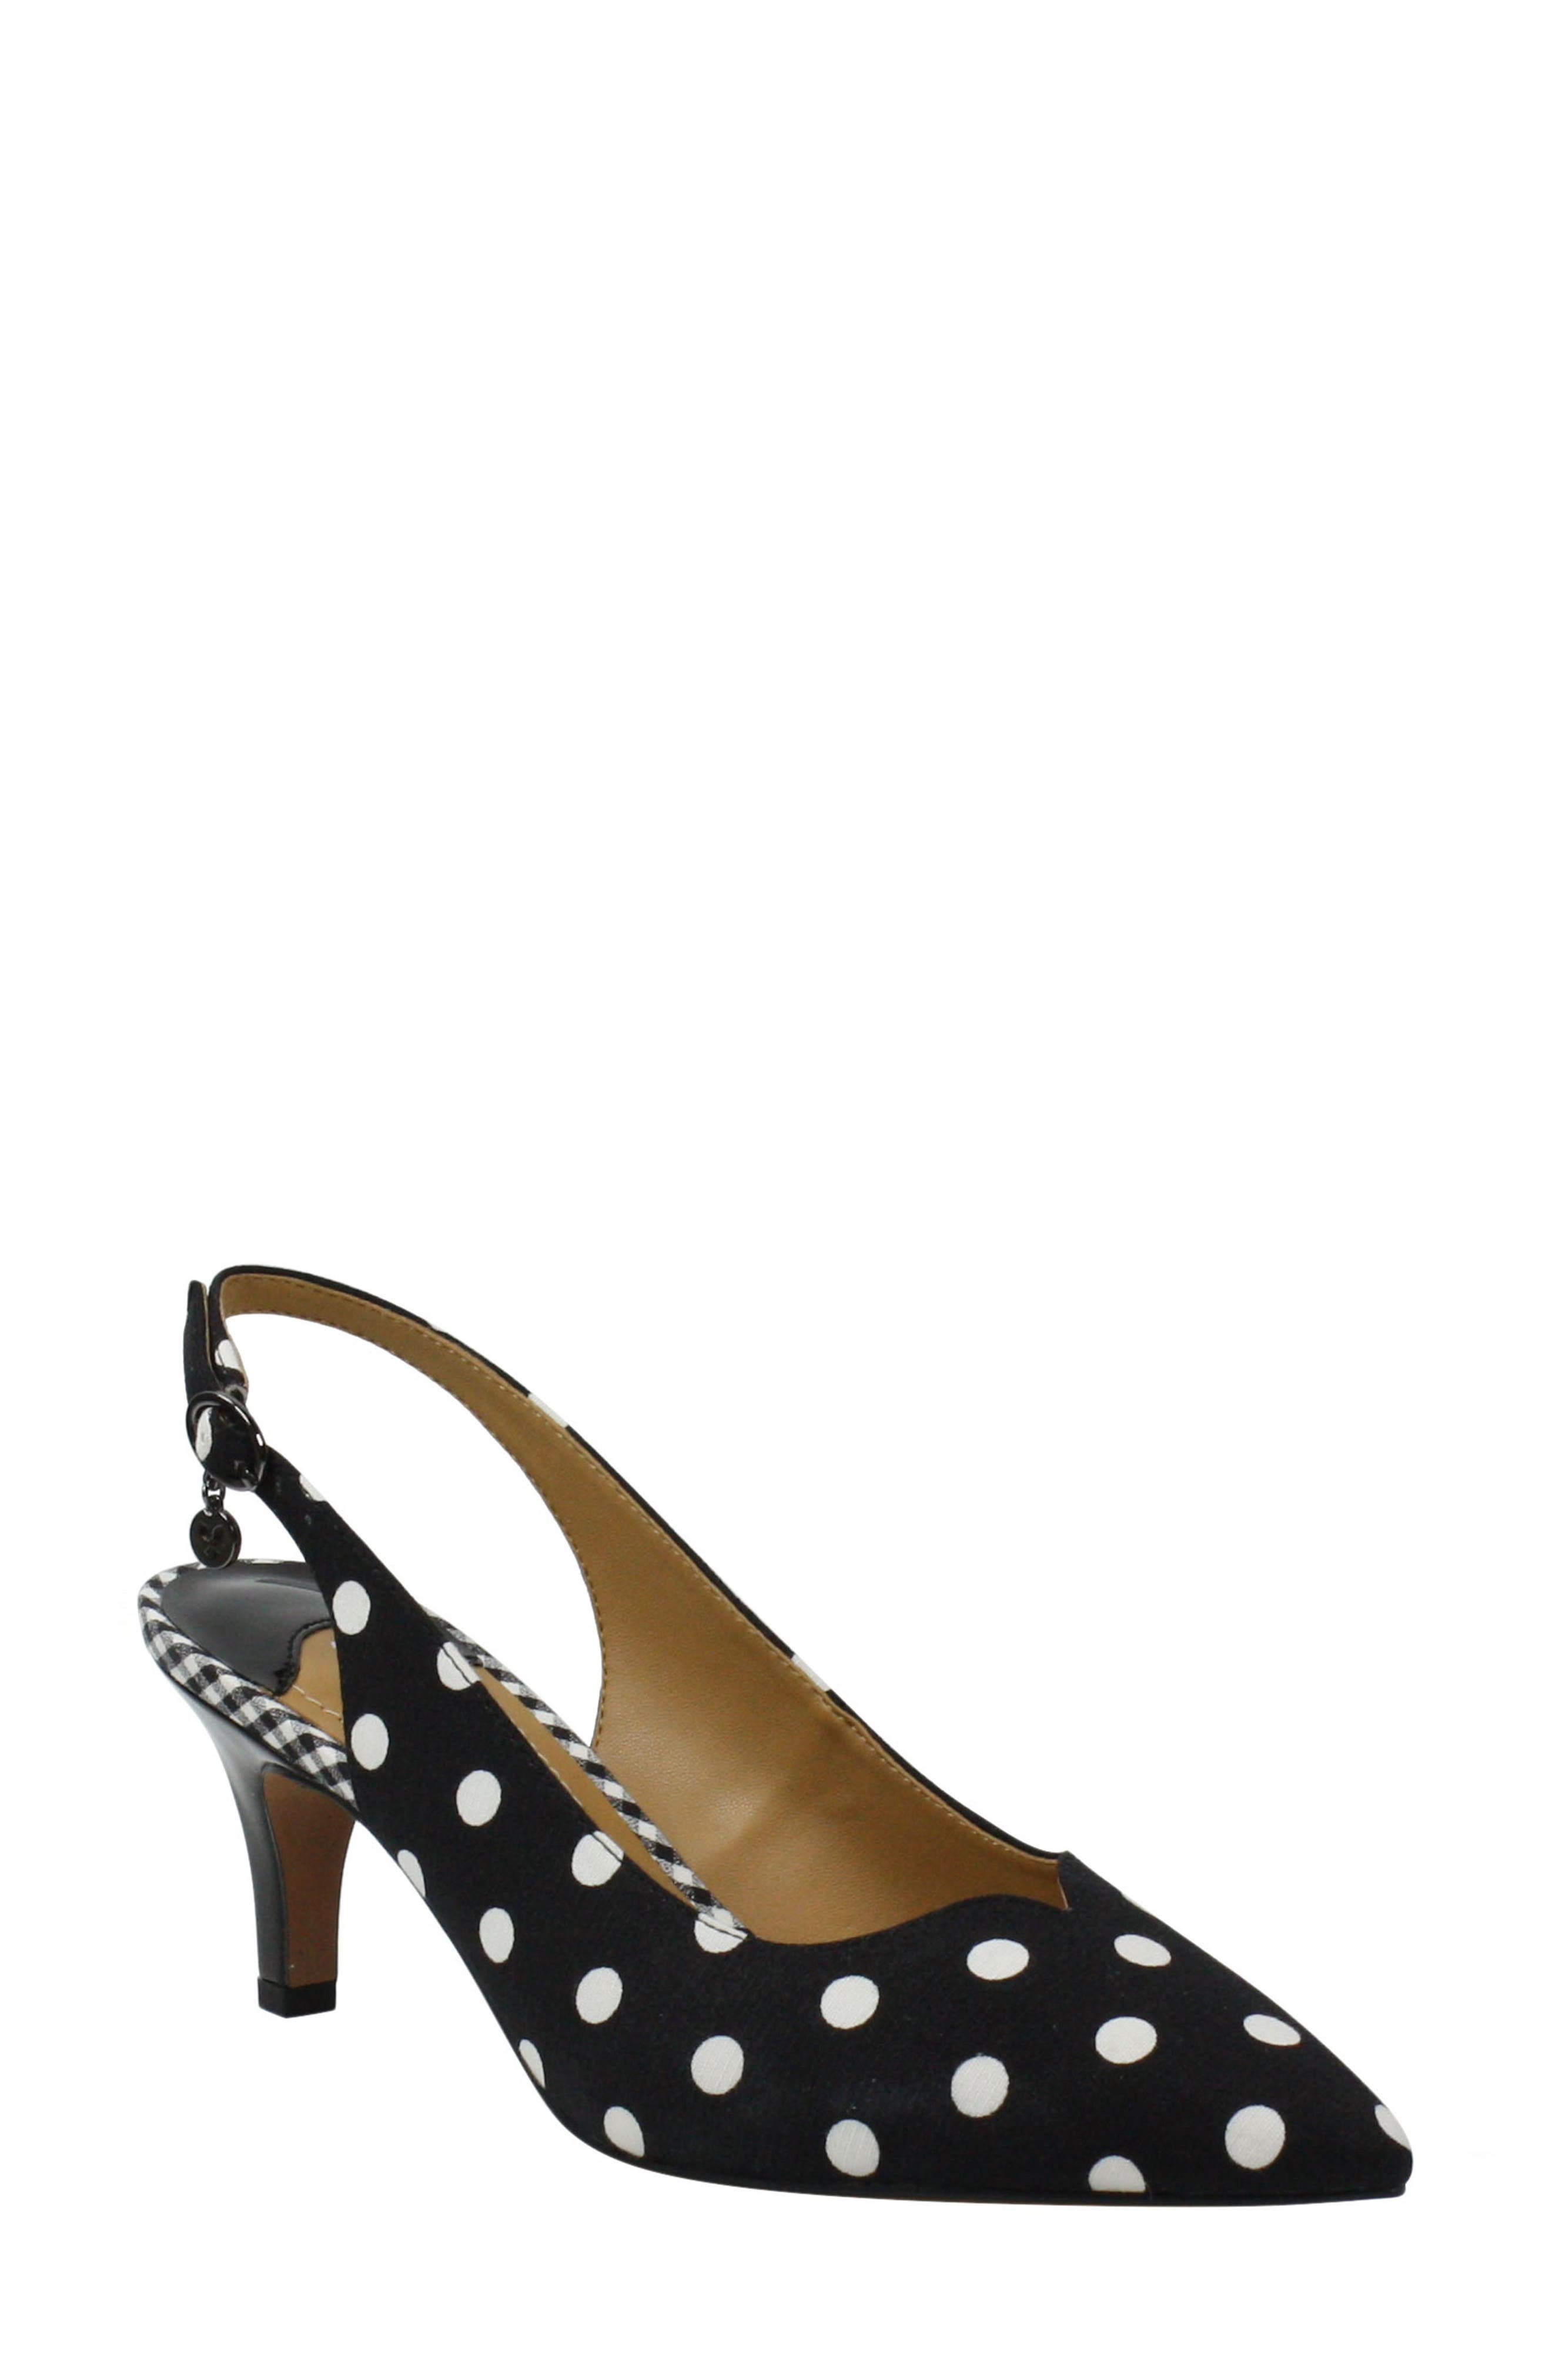 A tapered heel lifts a pointy-toe pump peppered in preppy polka dots and cushioned with a memory foam insole. Style Name:J.renee Envizyn Slingback Pump (Women). Style Number: 6018232. Available in stores.